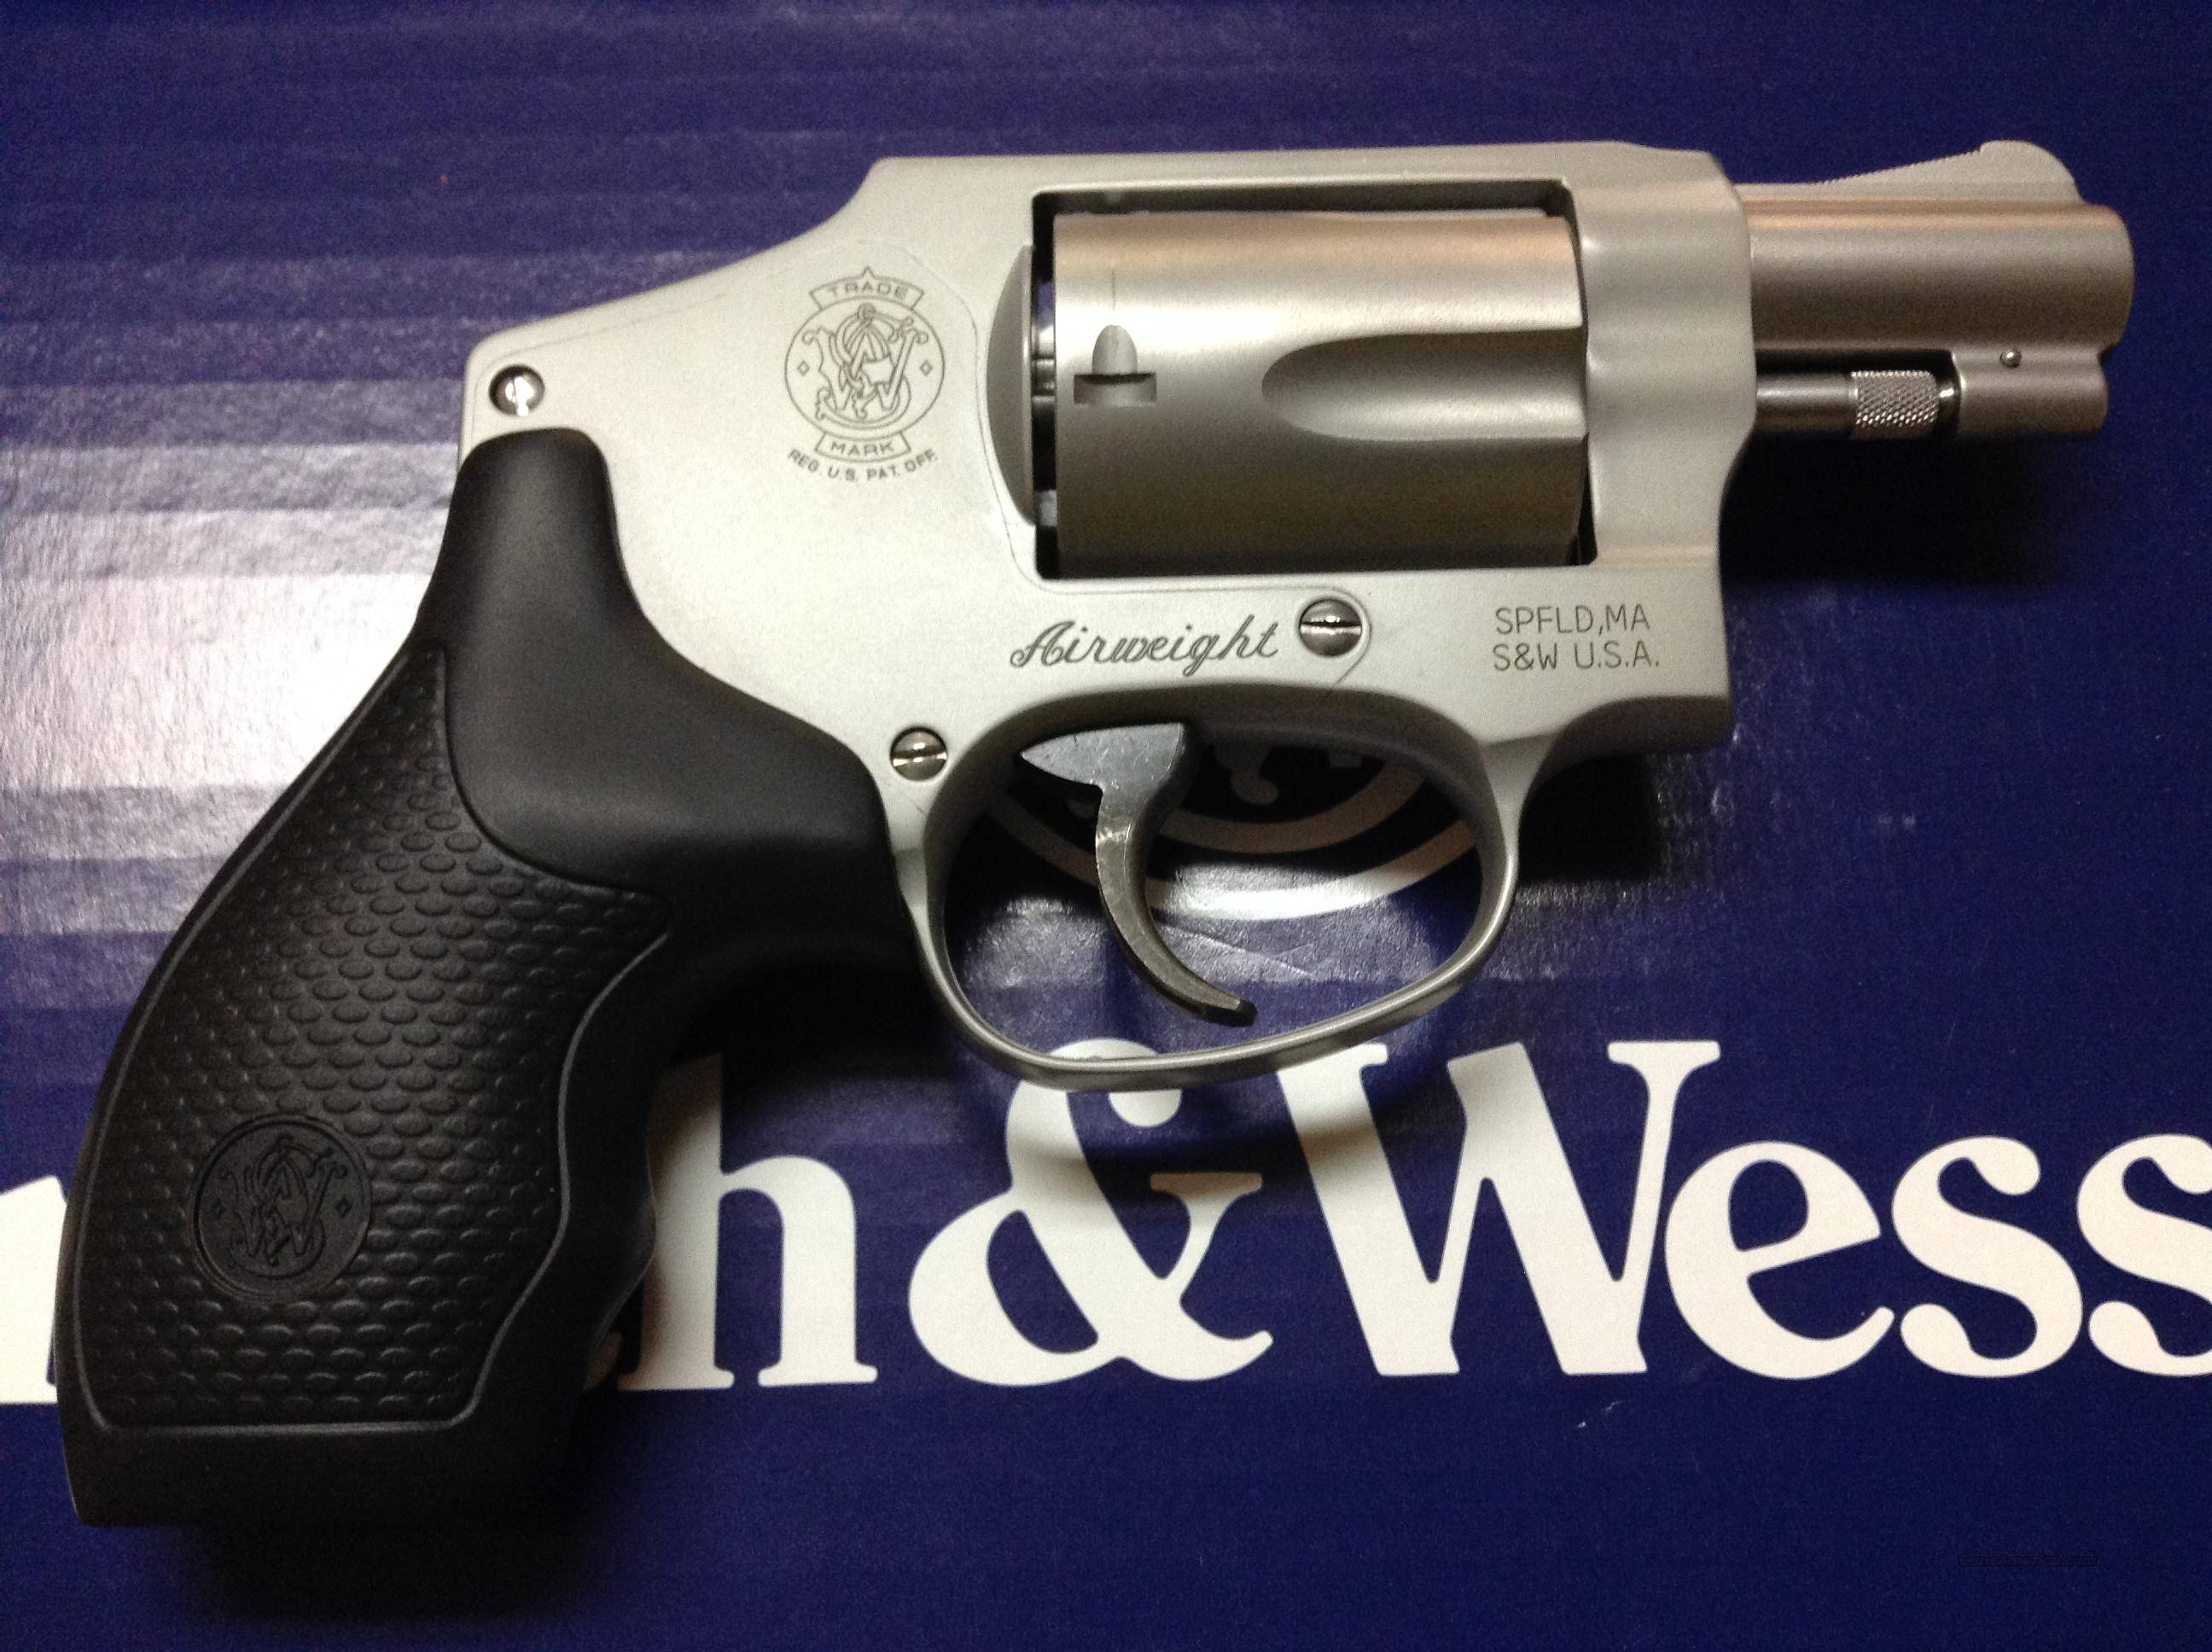 Smith & Wesson 642 38Spl +P Airweight  Guns > Pistols > Smith & Wesson Revolvers > Full Frame Revolver